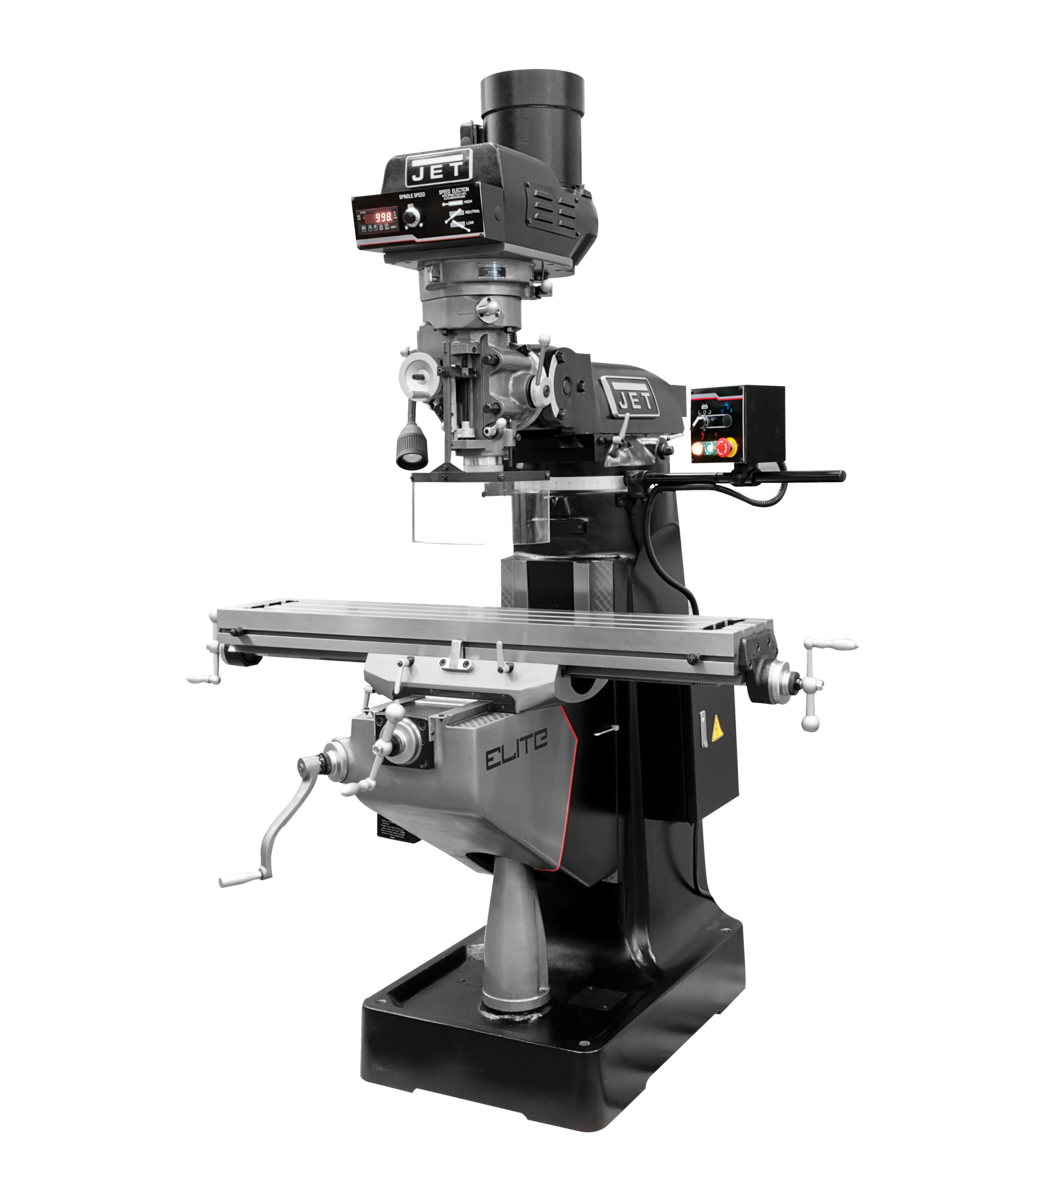 EVS-949 Mill with 2-Axis Newall DP700 DRO and Servo X-Axis Powerfeed and USA Air Powered Draw Bar